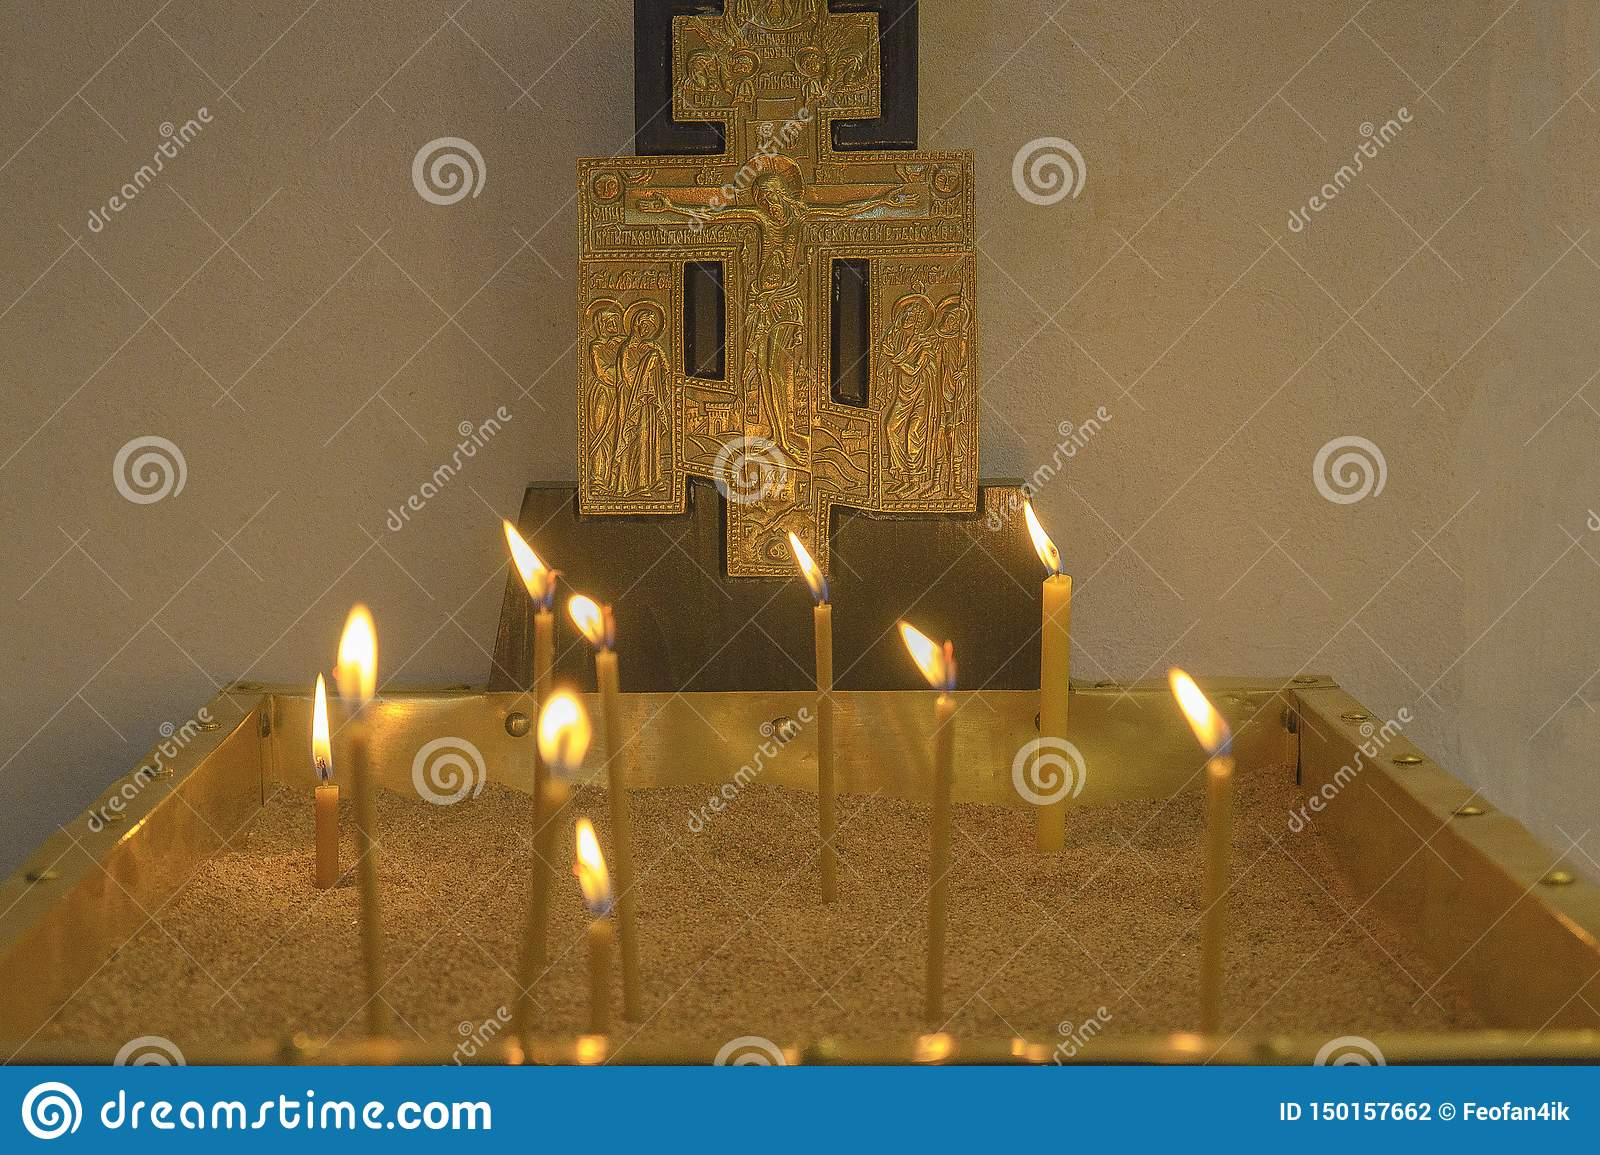 Basilica Of The Nativity. Burning candles in the Church on the main altar